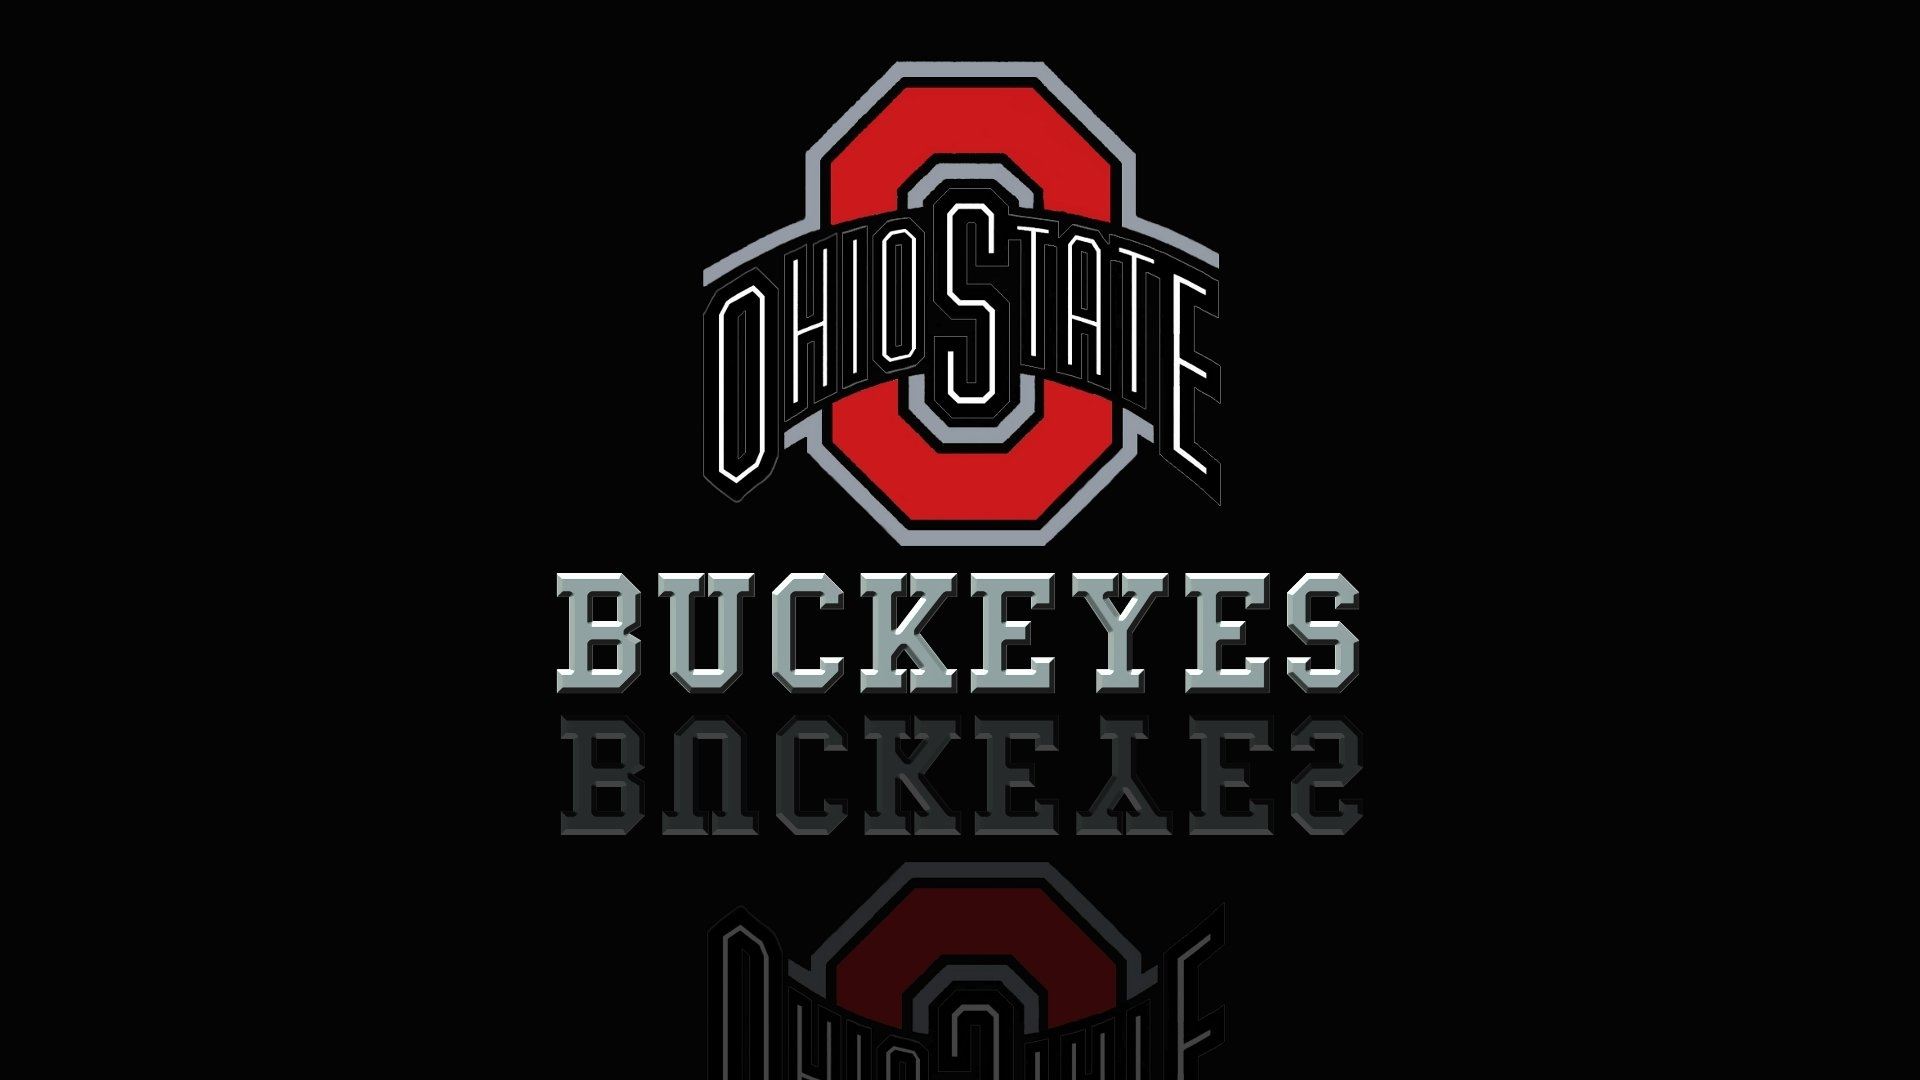 photo download ohio state wallpapers - media file | pixelstalk